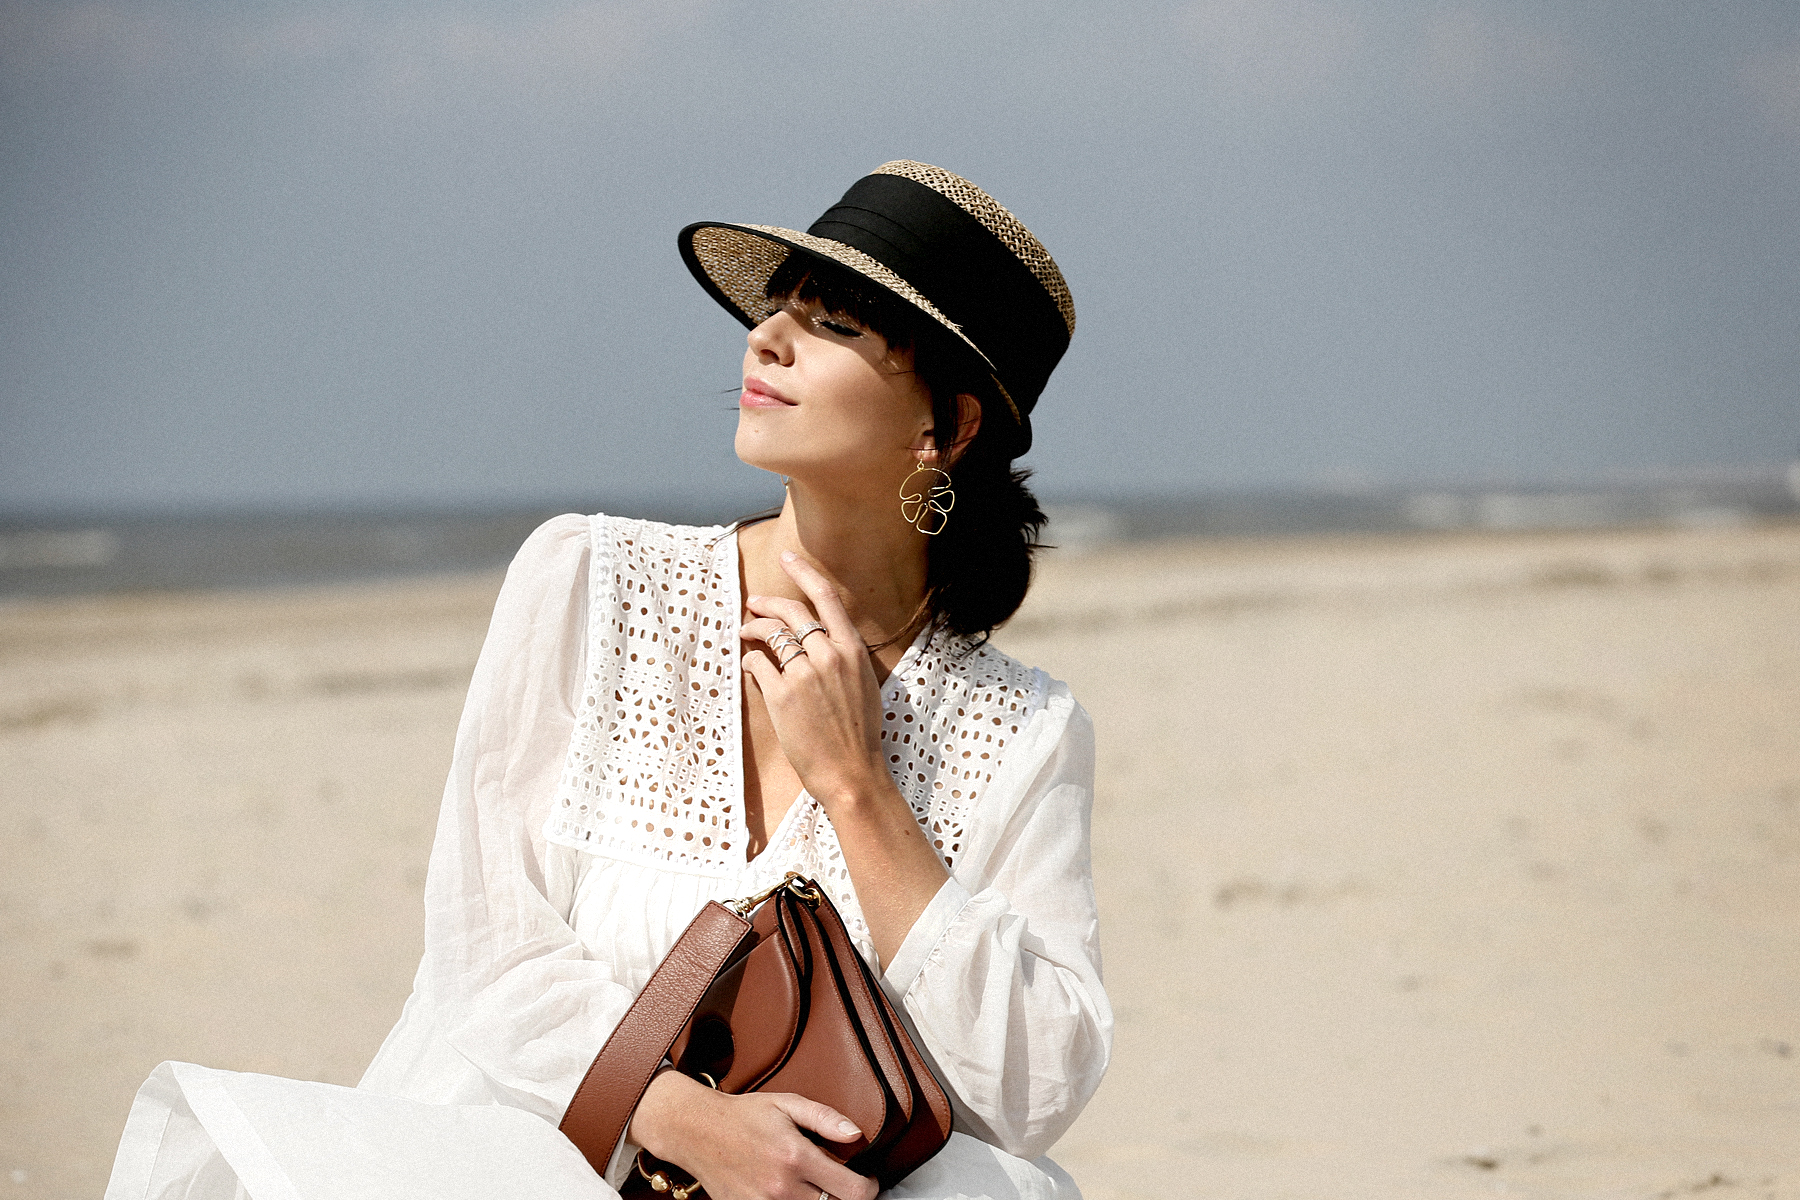 breuninger beach white dress closed j.w.anderson pierce bag straw hat summertime sunshine photography editorial vogue fashionblogger düsseldorf cats&dogs blog ricarda schernus modeblogger 3